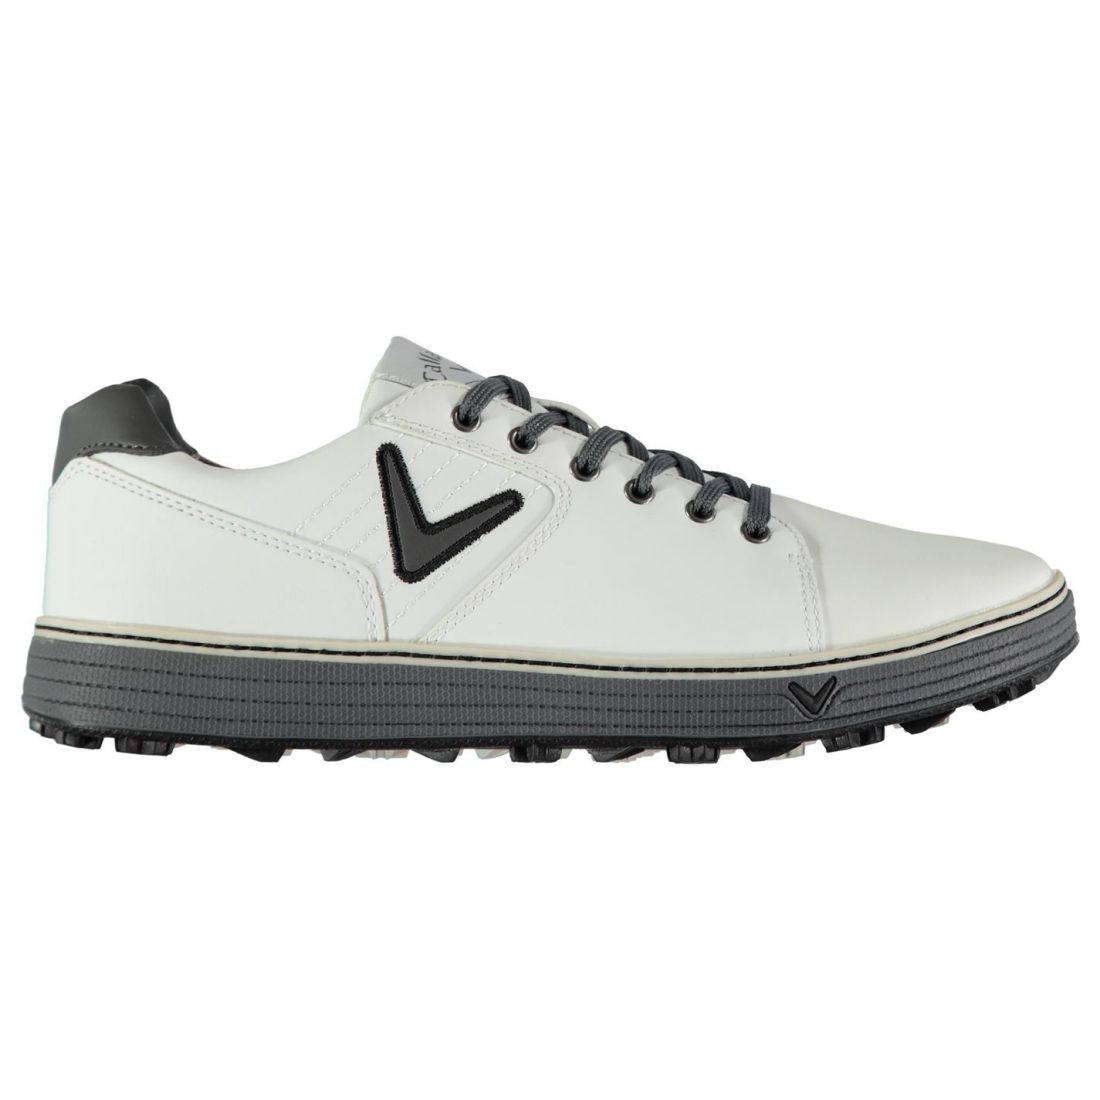 66b6f95b07 Callaway Mens Delmar Urban Golf Shoes Spikeless Comfortable Fit Ortholite